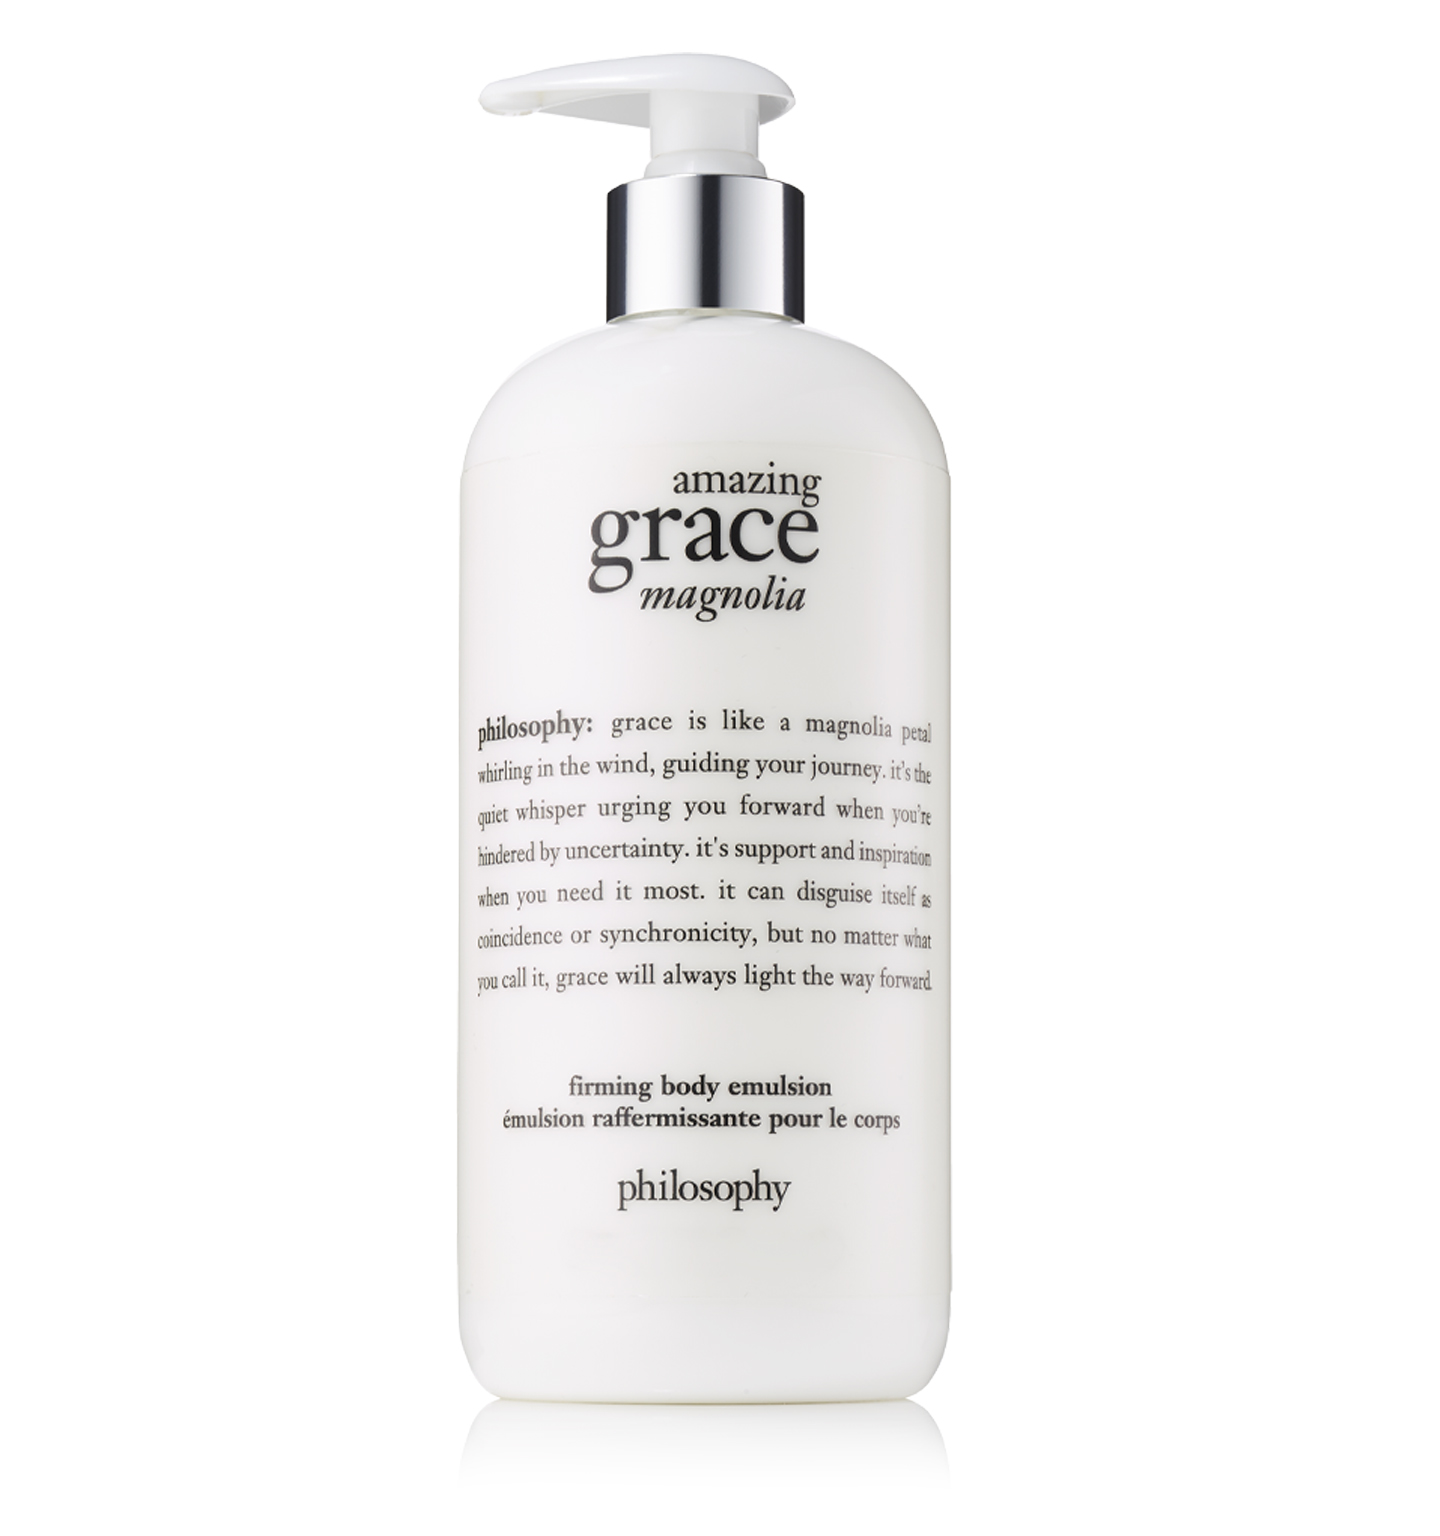 philosophy, amazing grace magnolia firming body emulsion